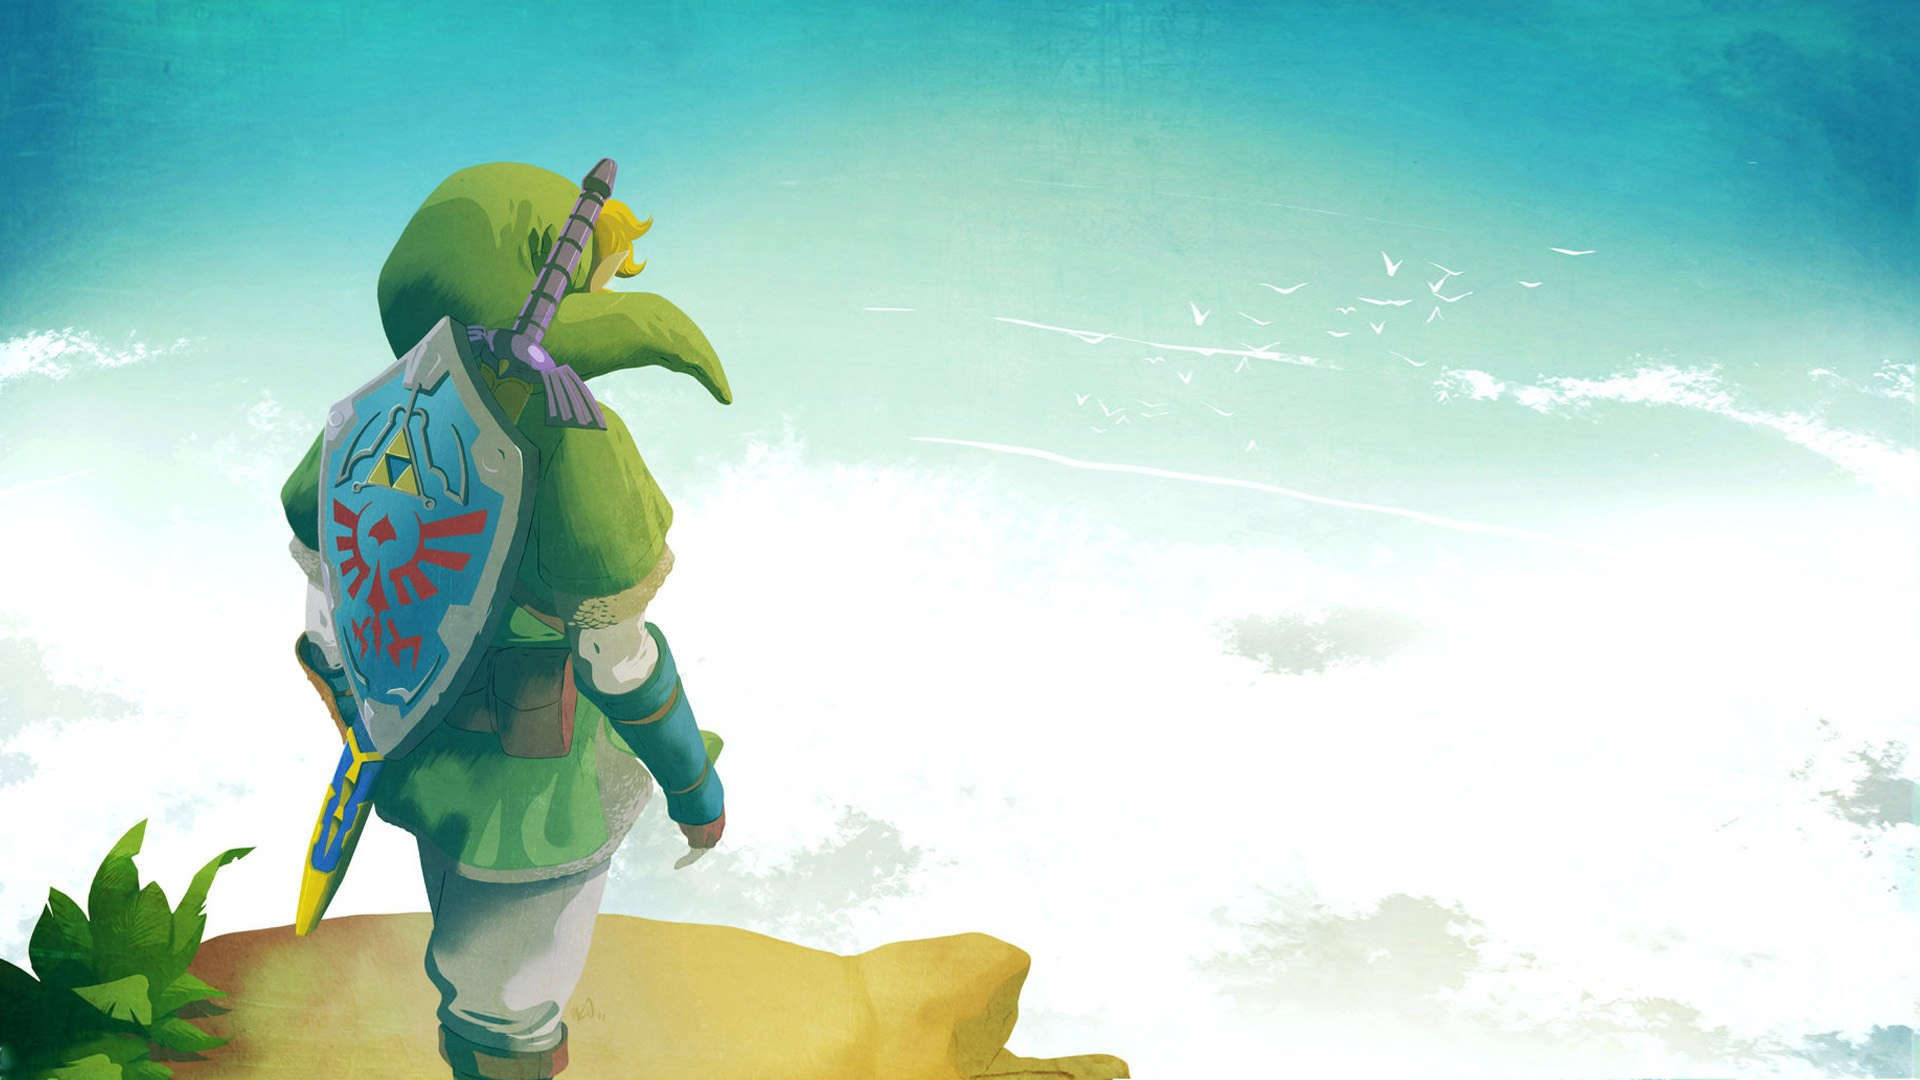 Legend of zelda wallpaper 1920x1080 HQ WALLPAPER   38411 1920x1080